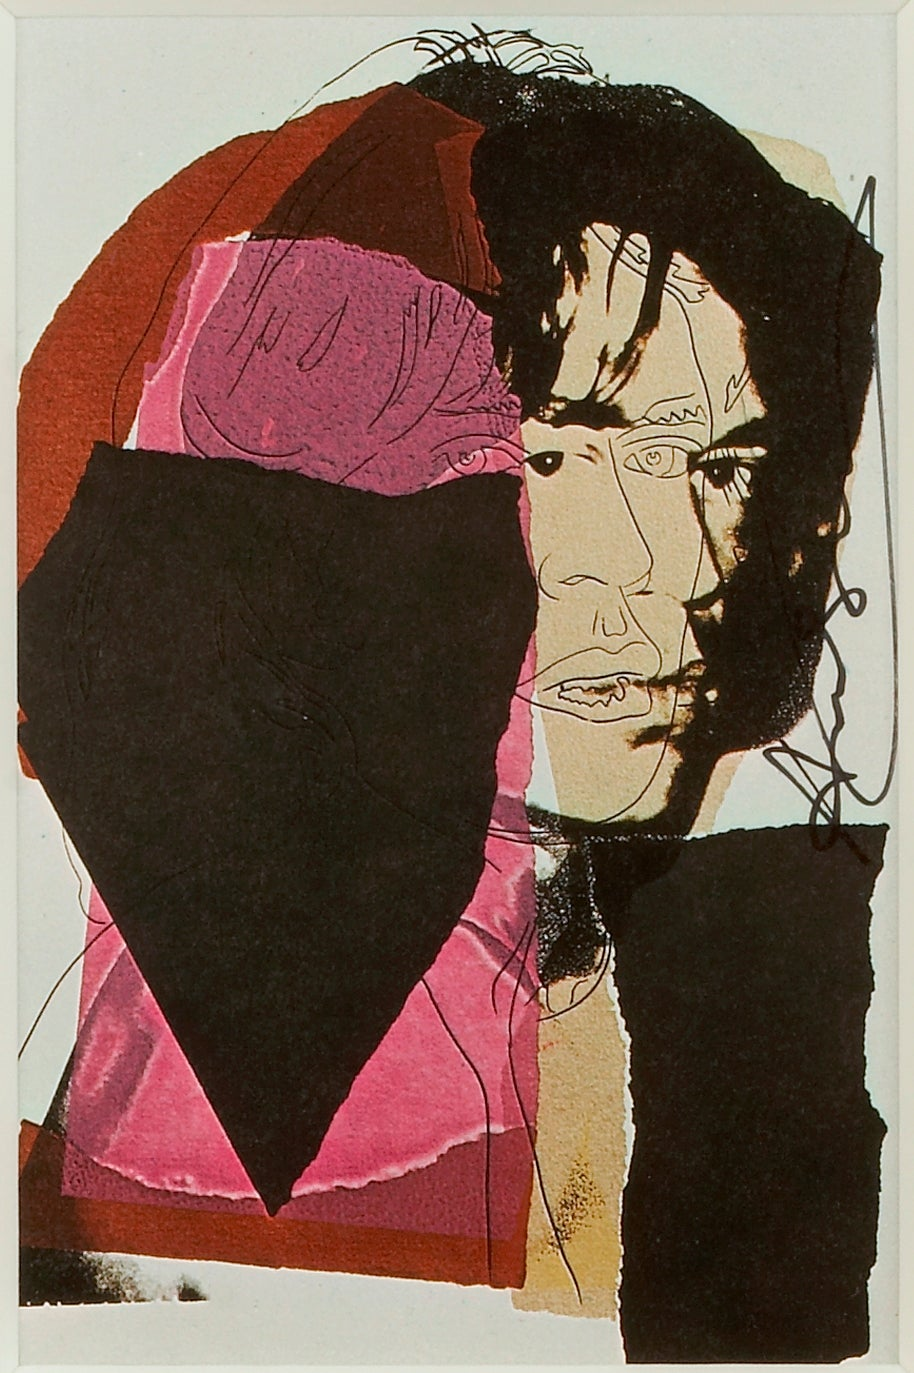 Mick Jagger VII - Andy Warhol, Announcement card, Rolling Stones, Musician, Pop